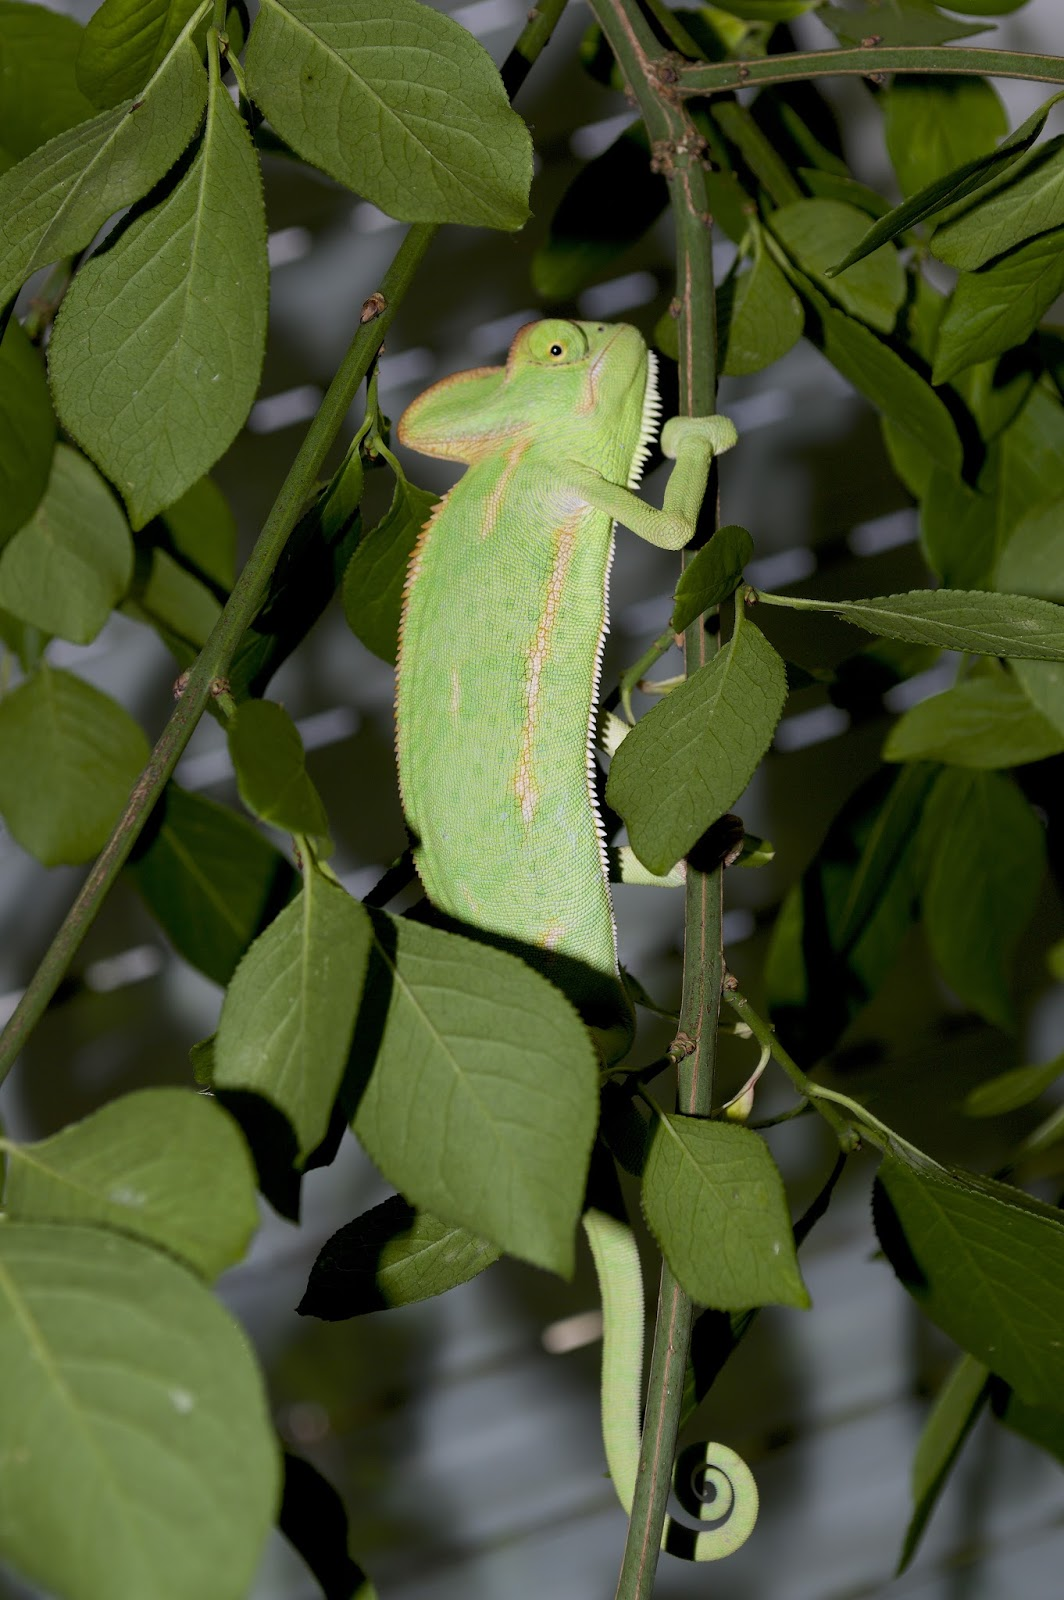 Chameleon perfectly disguised in its surrounding.